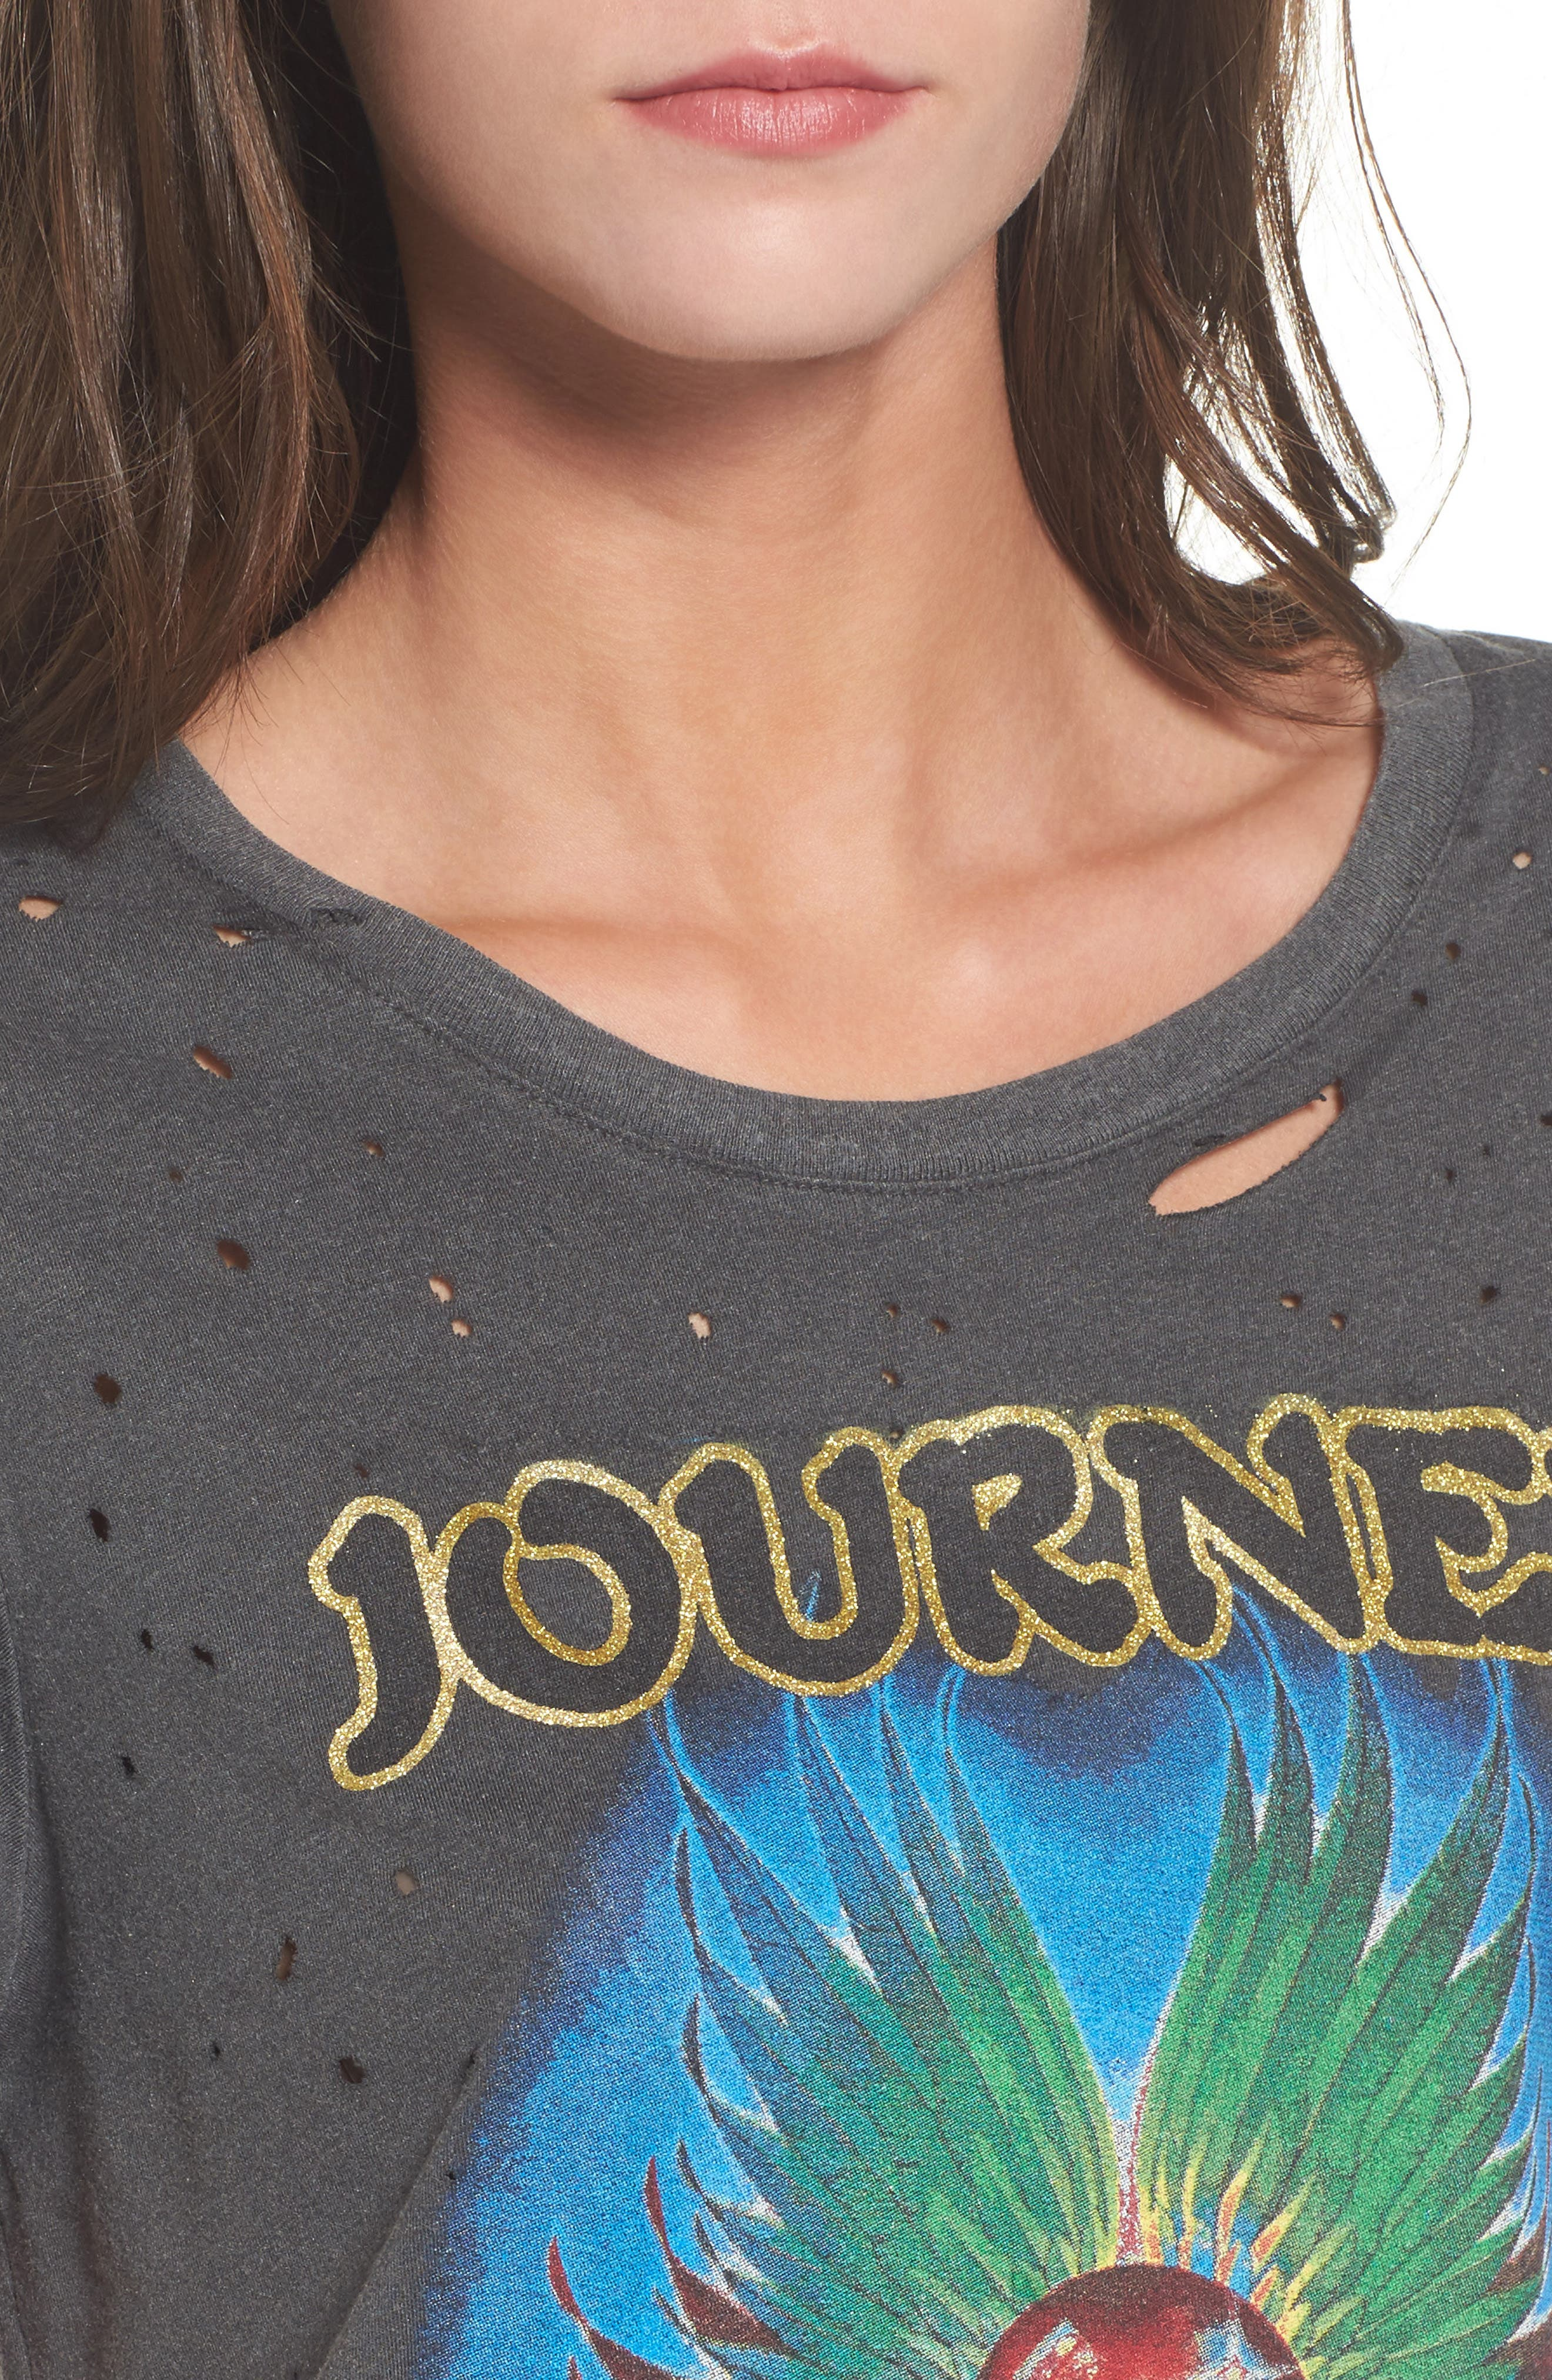 Journey Ripped Graphic Tee,                             Alternate thumbnail 4, color,                             001